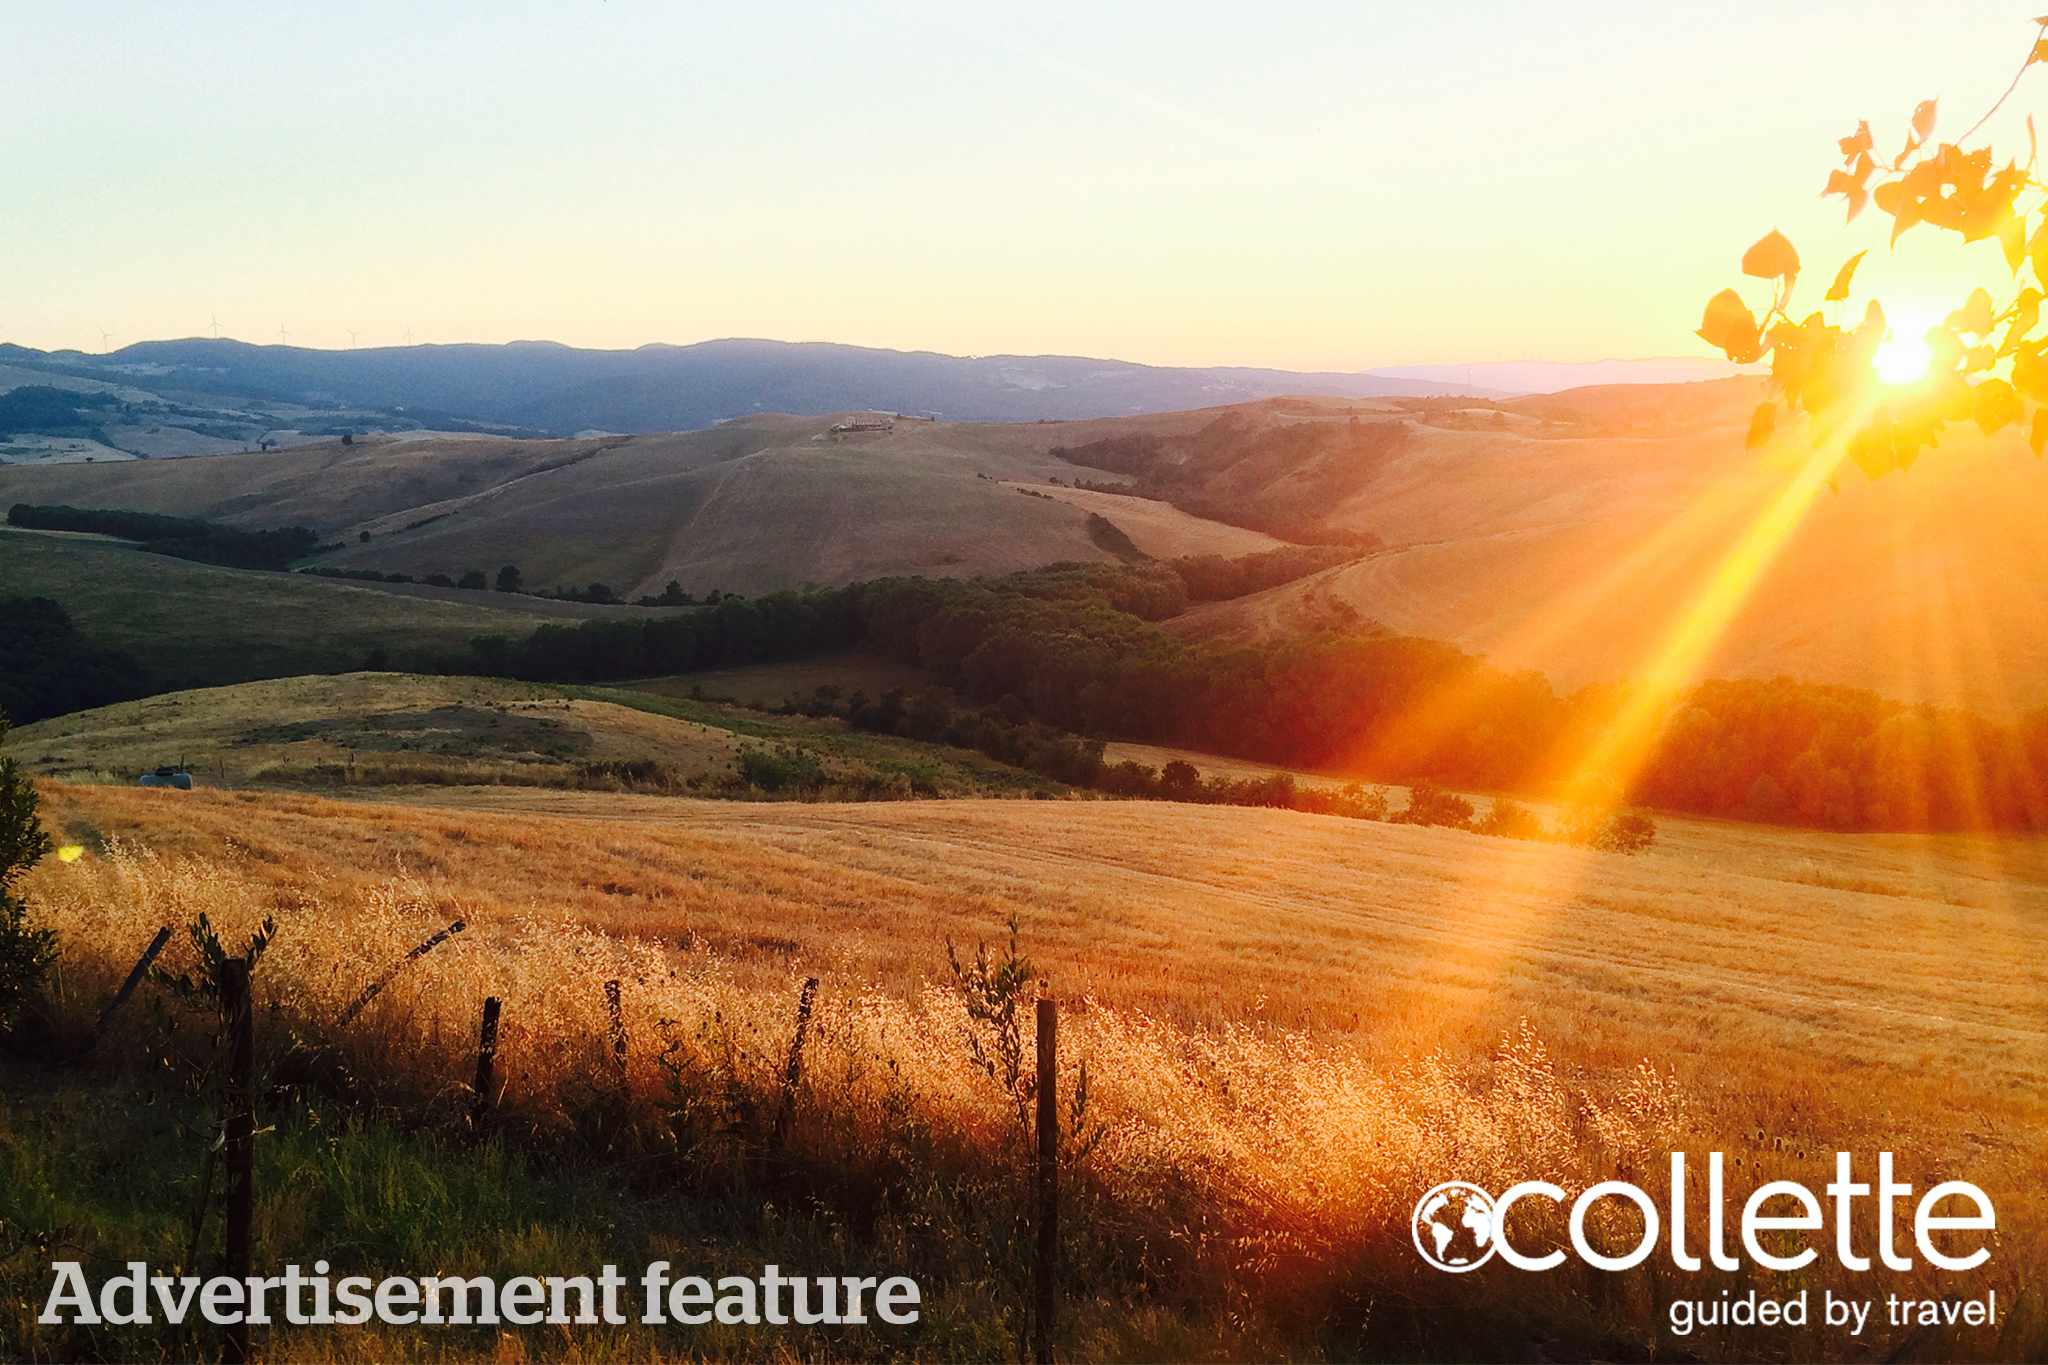 Italian countryside holiday from Collette